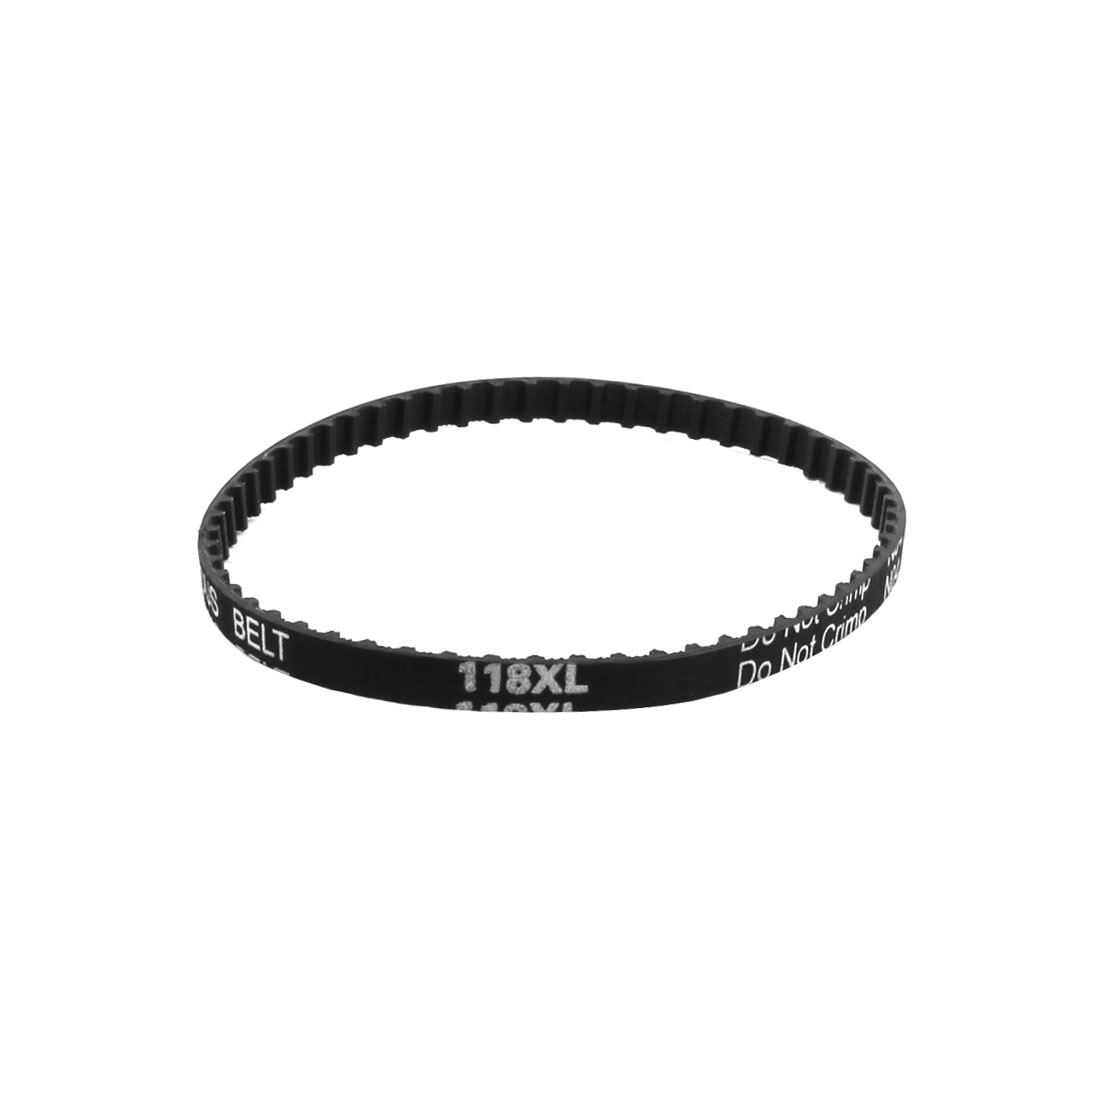 "XL-118 11.8"" Girth 5.08mm Pitch 59-Teeth 025 6.4mm Width Black Rubber Single Side Synchronous Timing Belt"